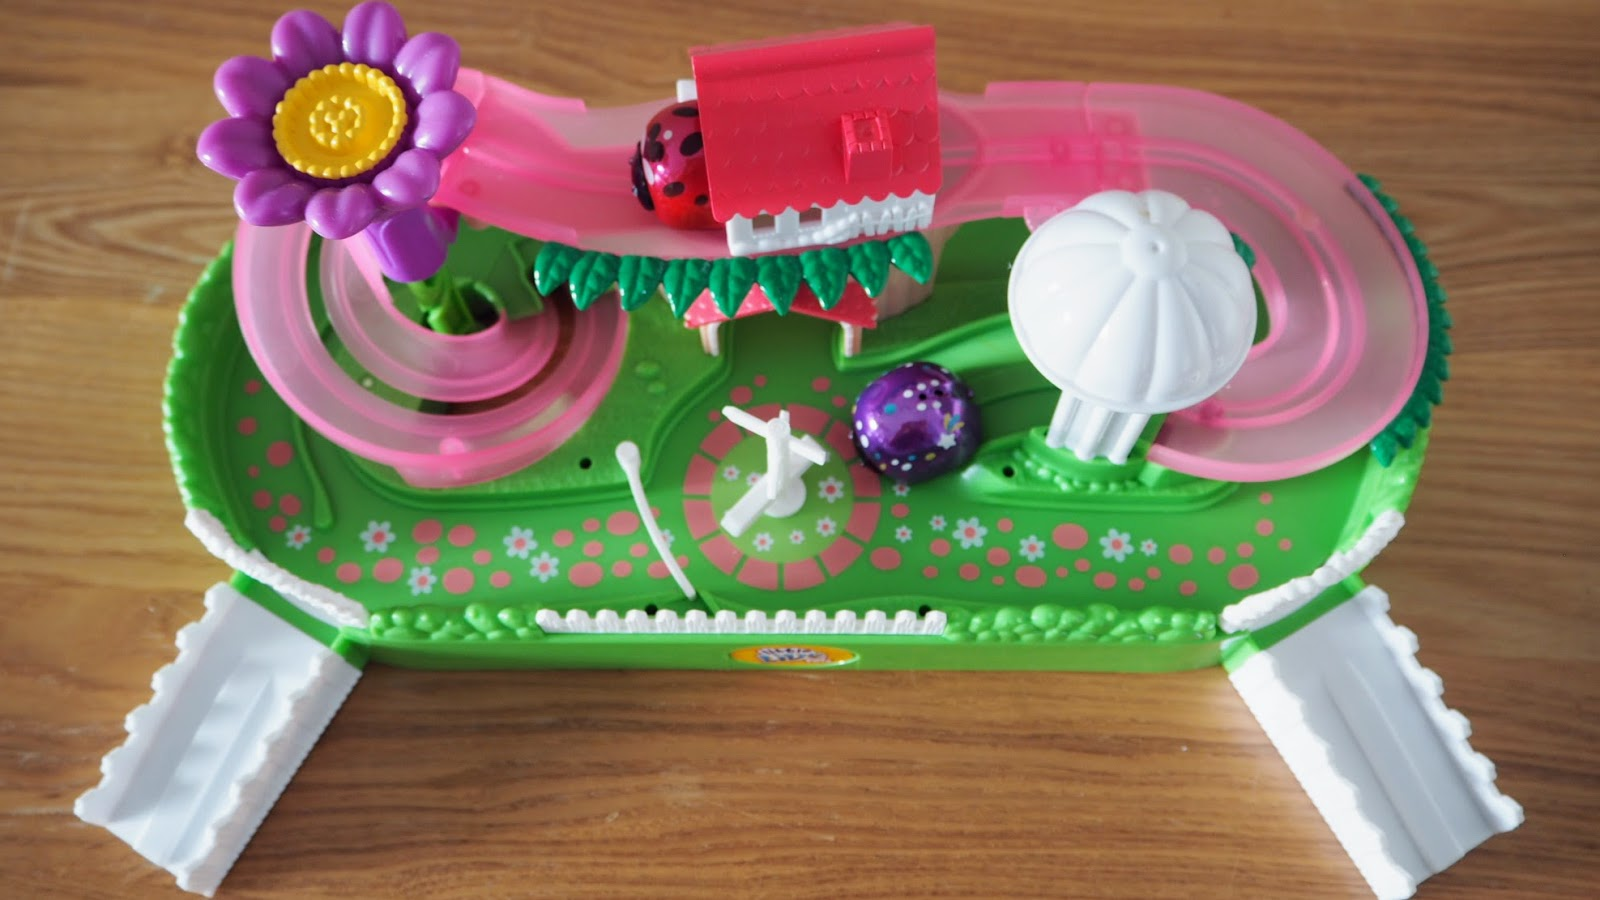 Little Live Pets Ladybug Playset Review